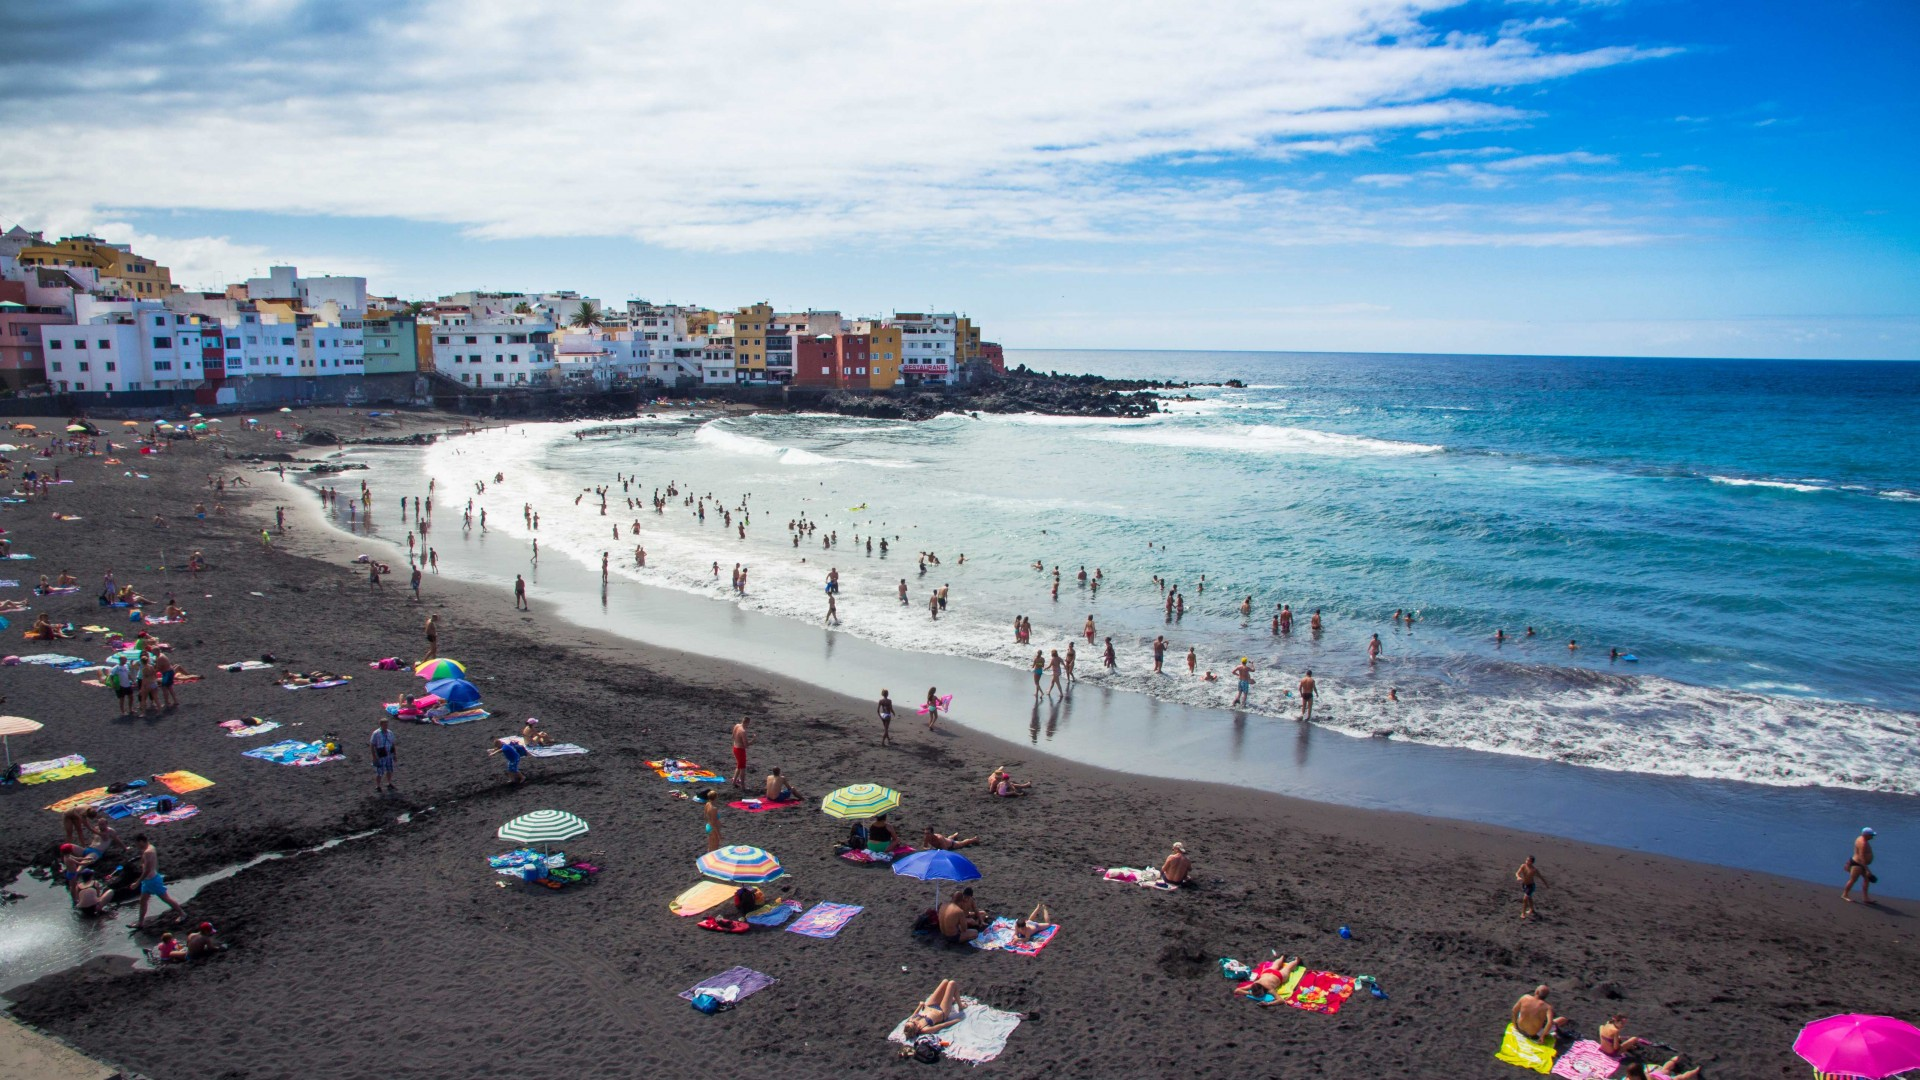 Black-sand beach in Tenerife, Spain